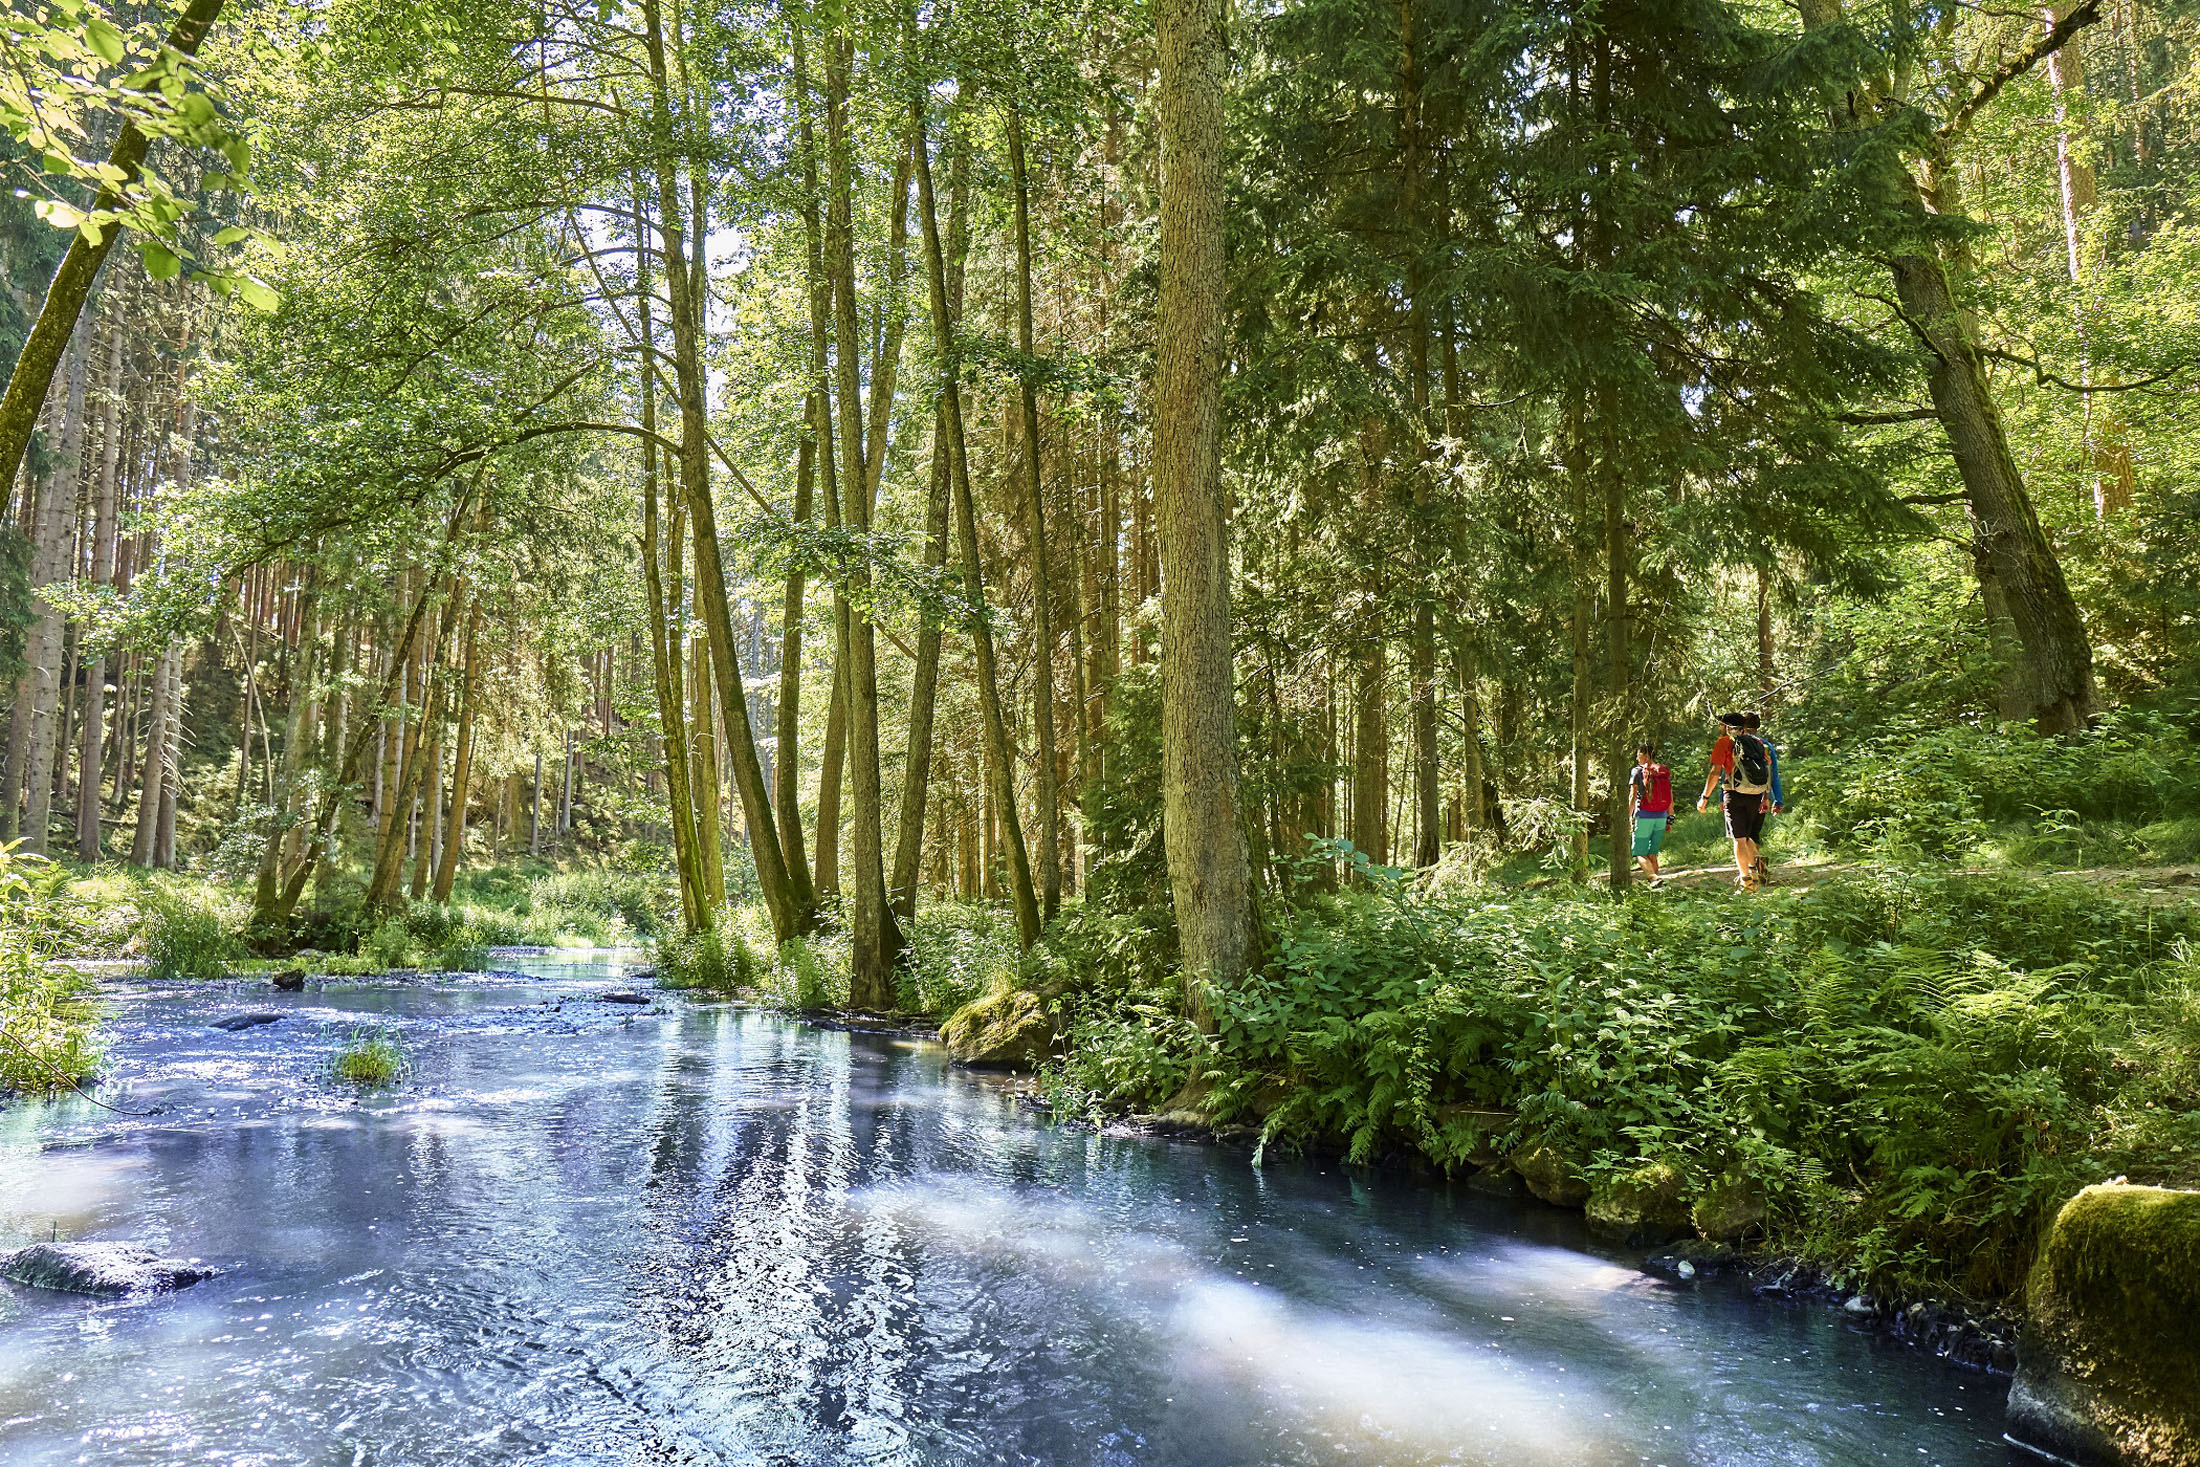 The longest certified hiking trail in Germany, the 600-kilometre-long Goldsteig trail crosses the Upper Palatinate Forest as well as the Bavarian Forest.